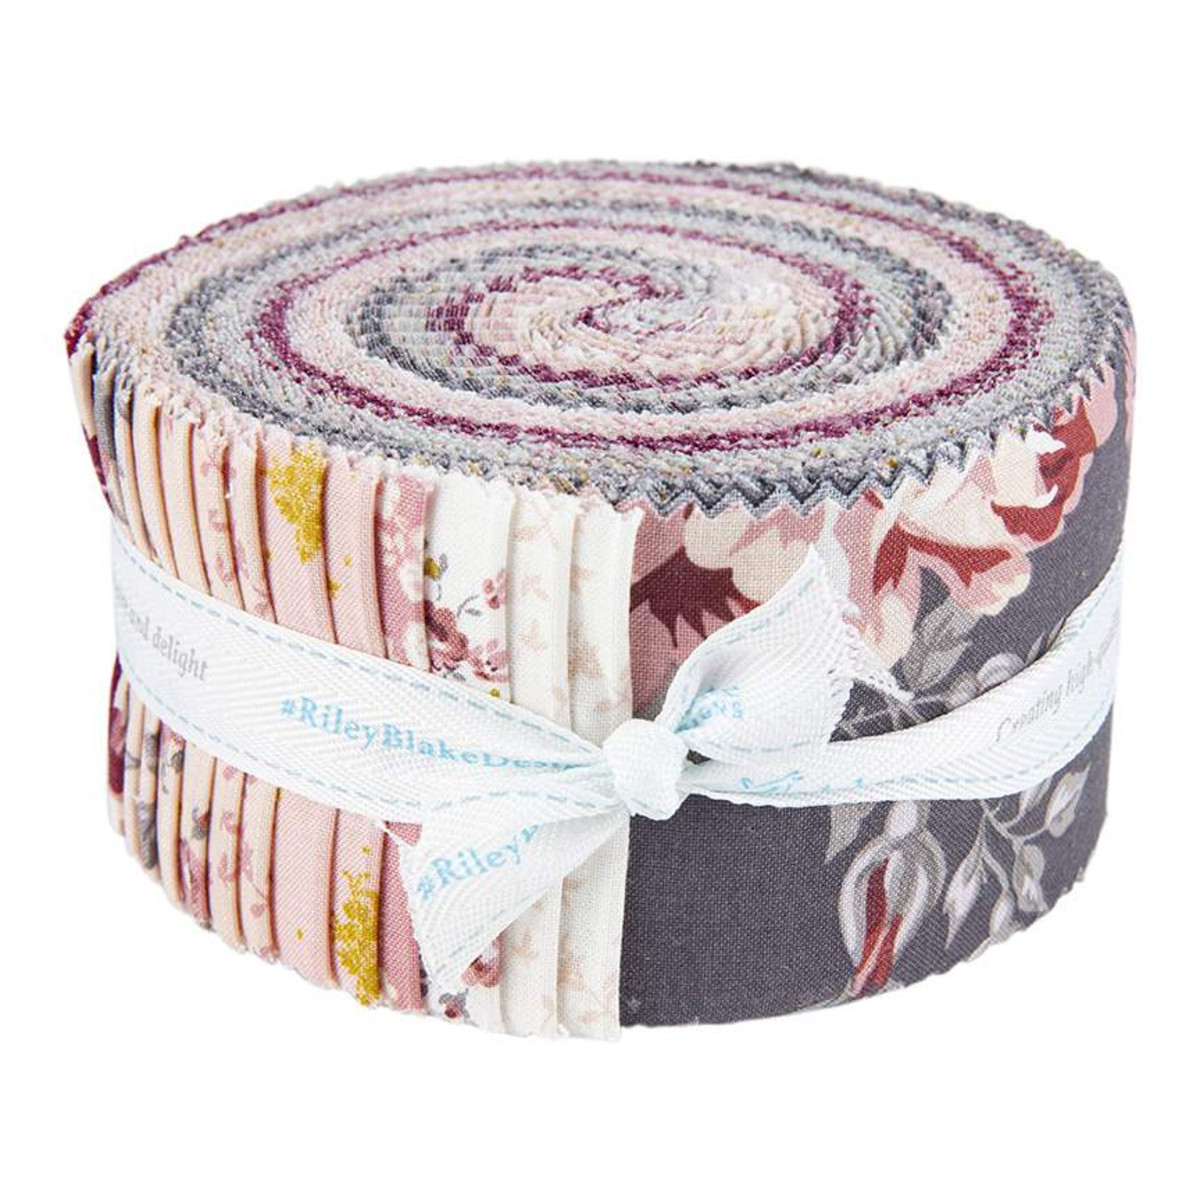 Riley Blake Jelly Roll - Exquisite by Gerri Robinson